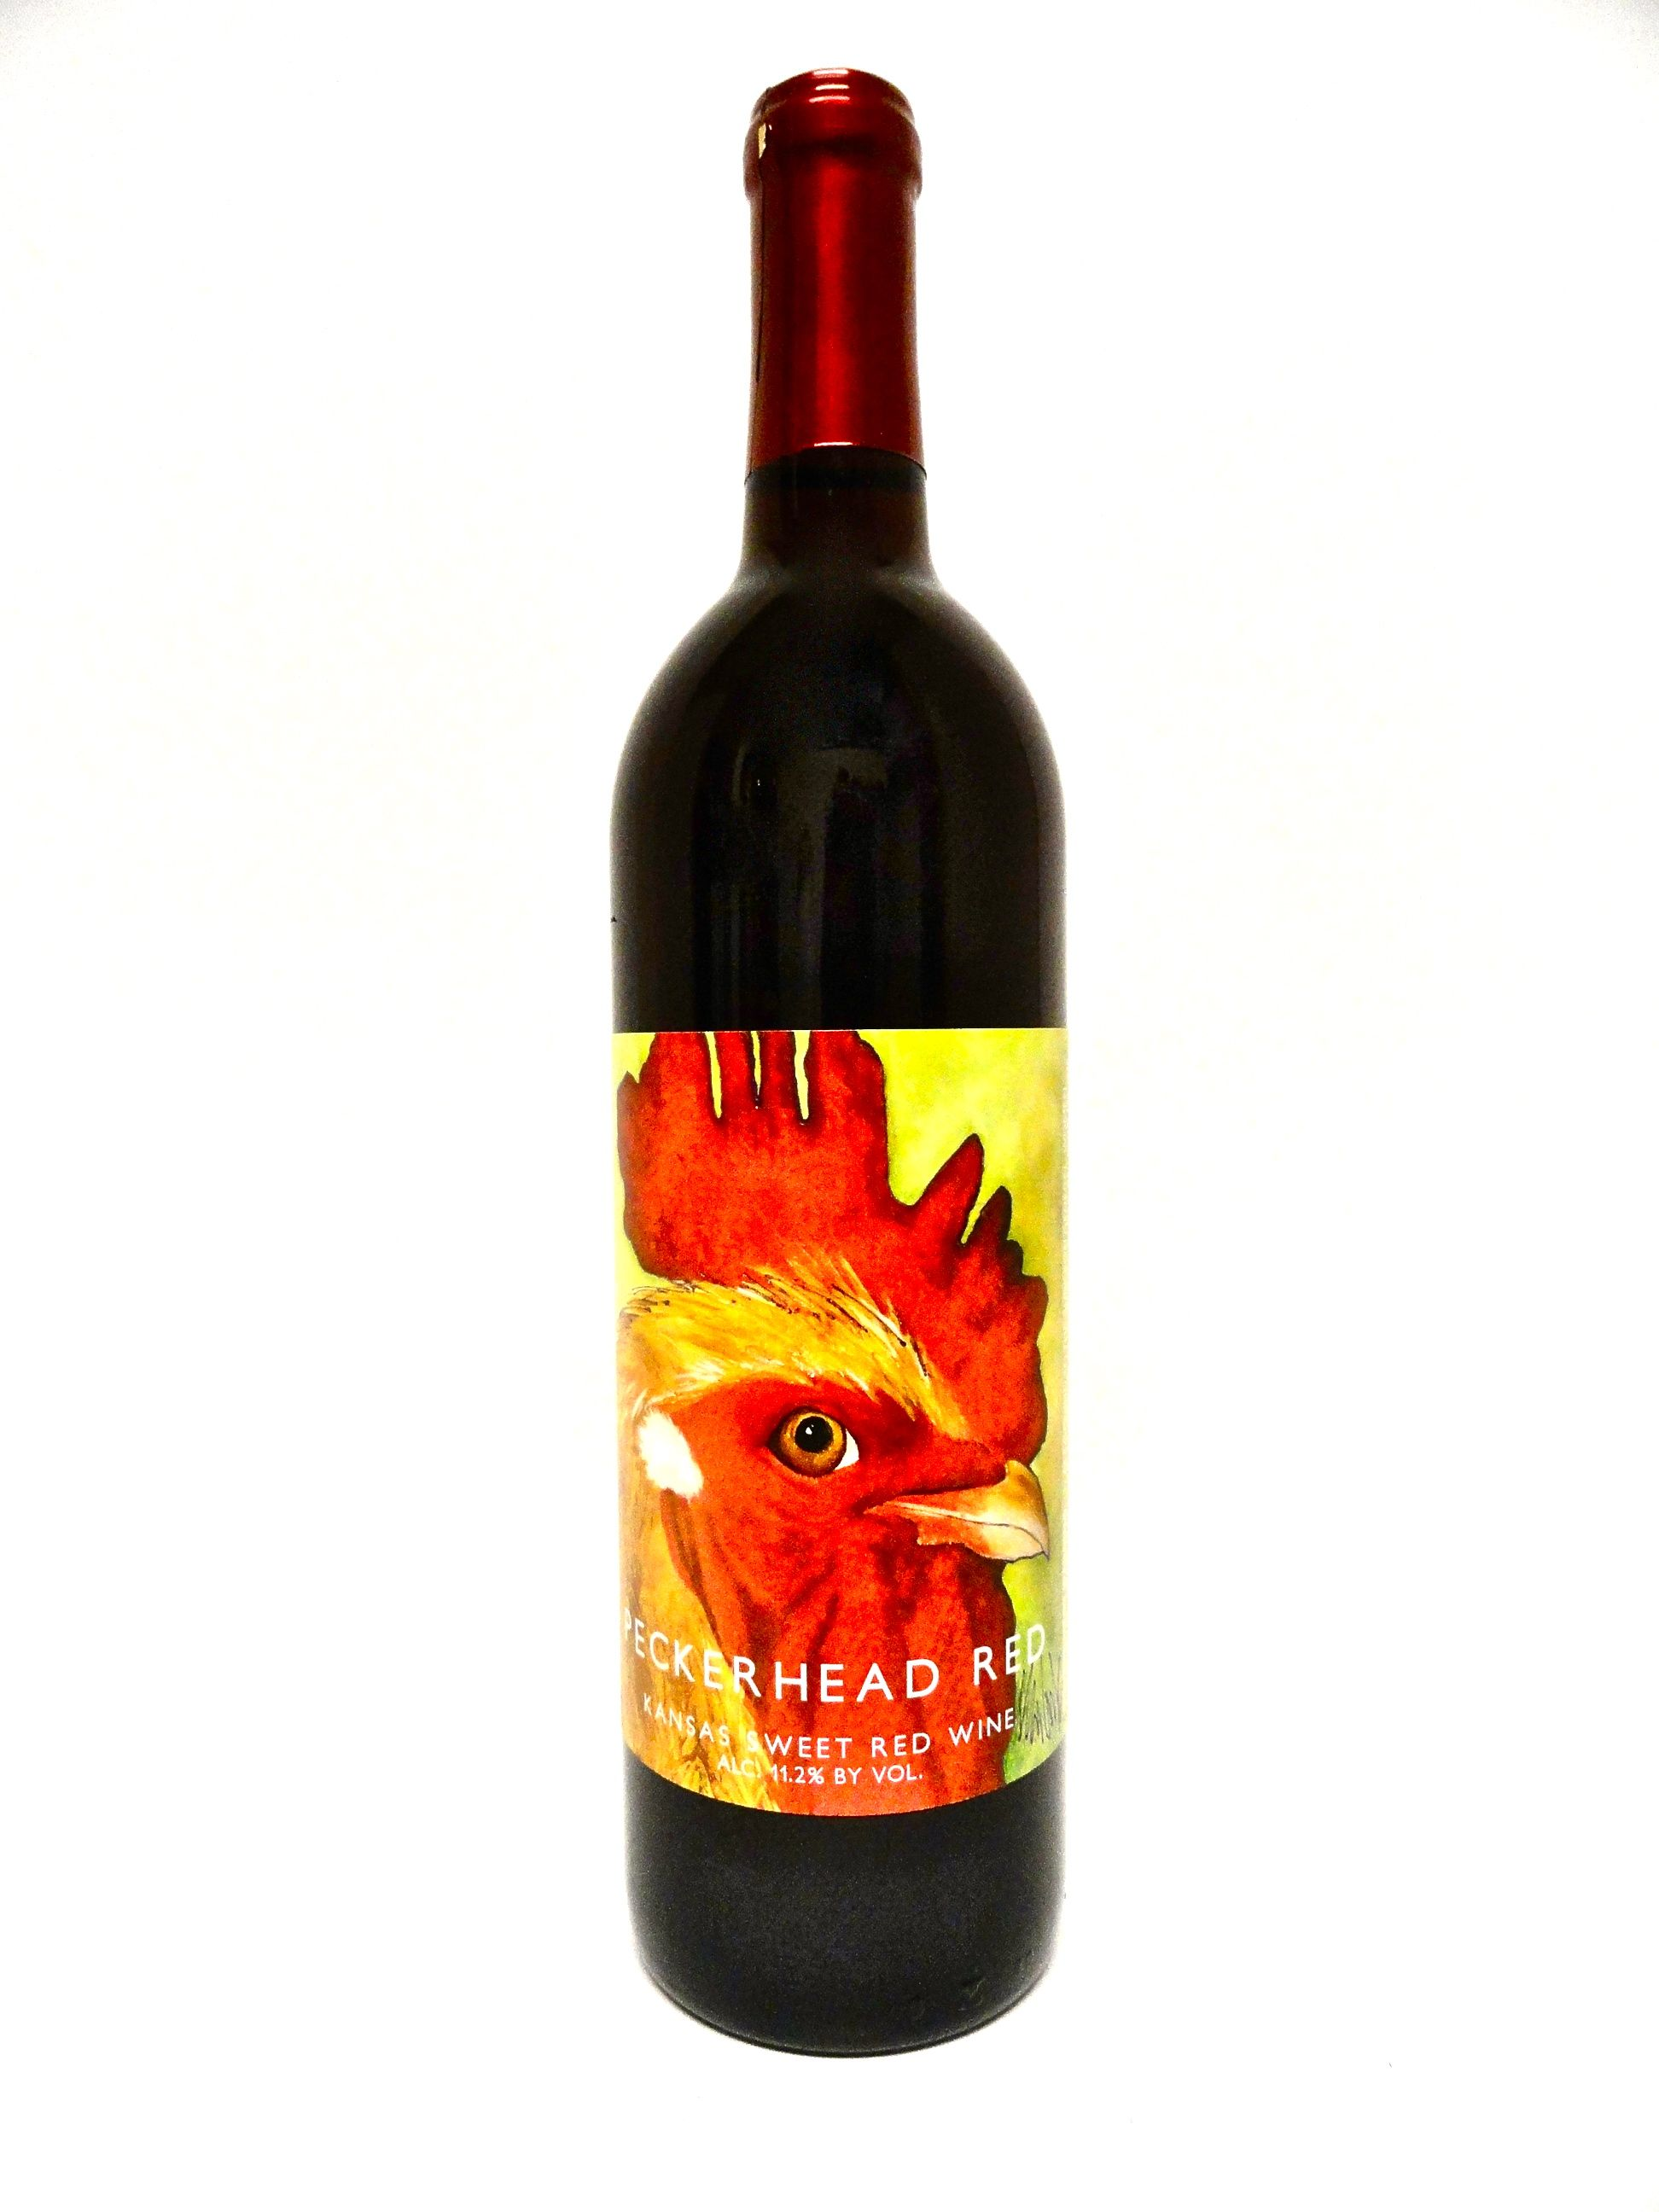 Peckerhead Red Sweet 14 Grace Hill Winery Handcrafted Wine Winery Red